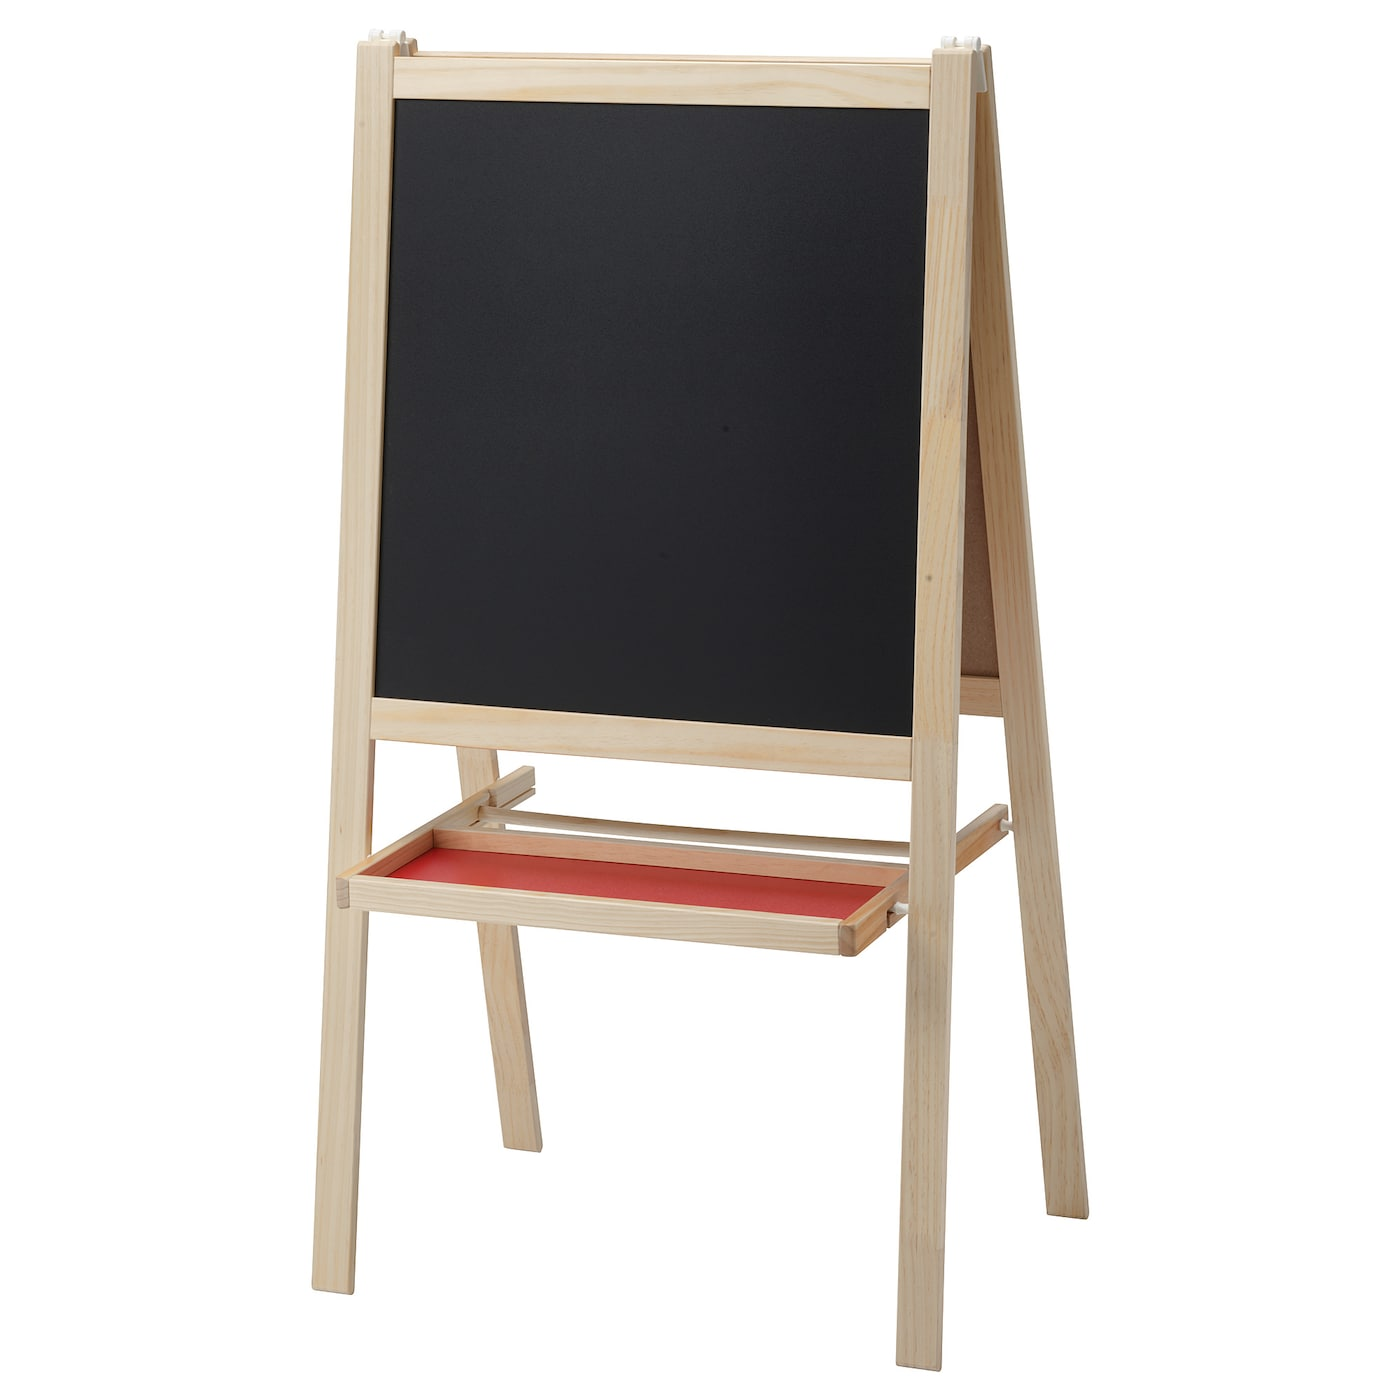 IKEA MÅLA easel Can be folded and put away when not in use.